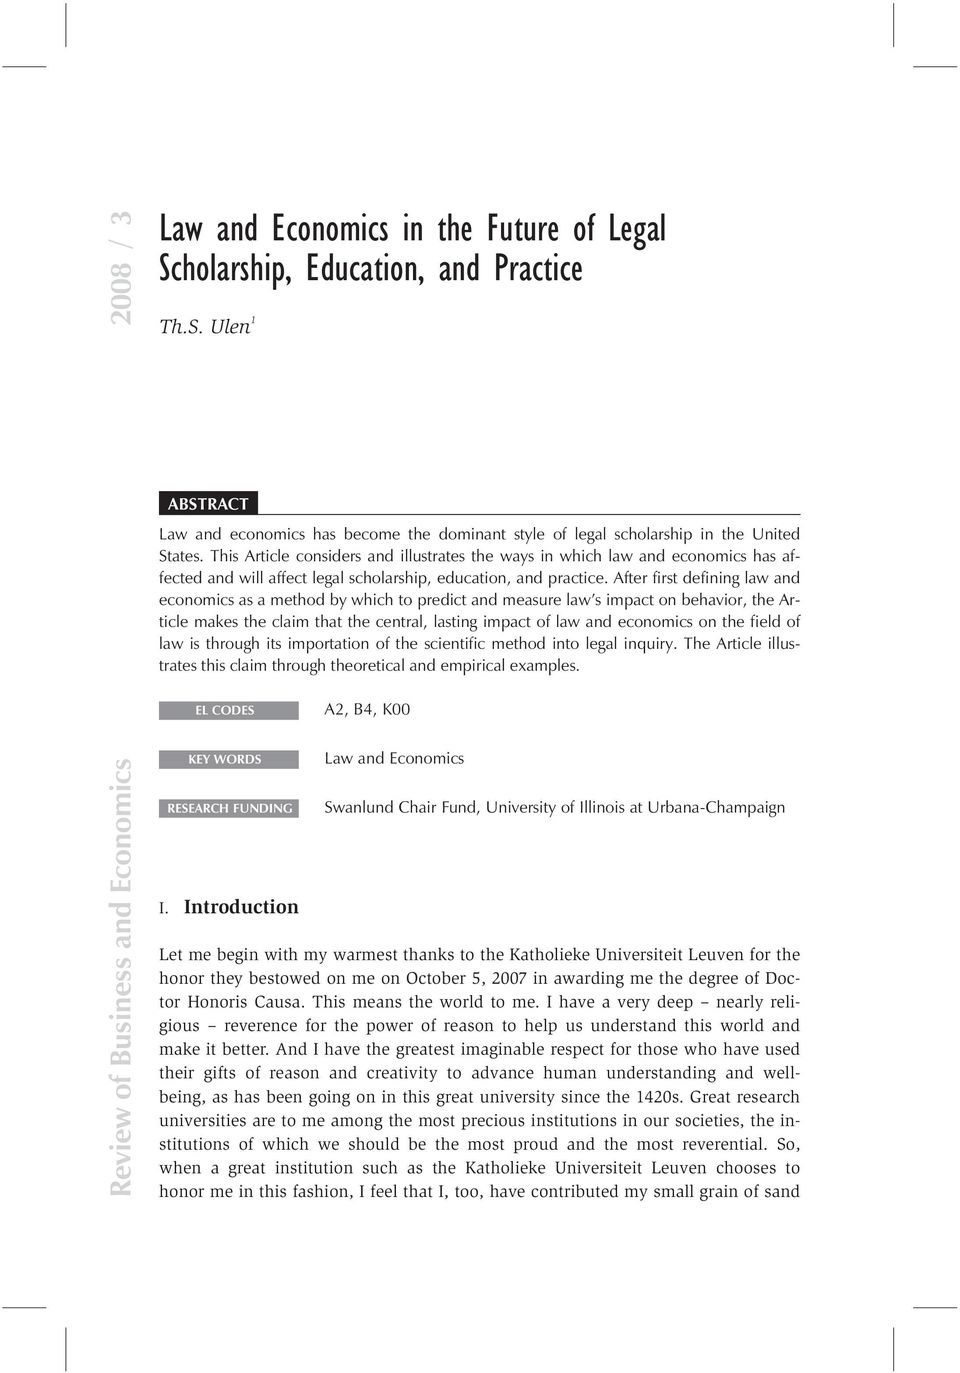 After first defining law and economics as a method by which to predict and measure law s impact on behavior, the Article makes the claim that the central, lasting impact of law and economics on the